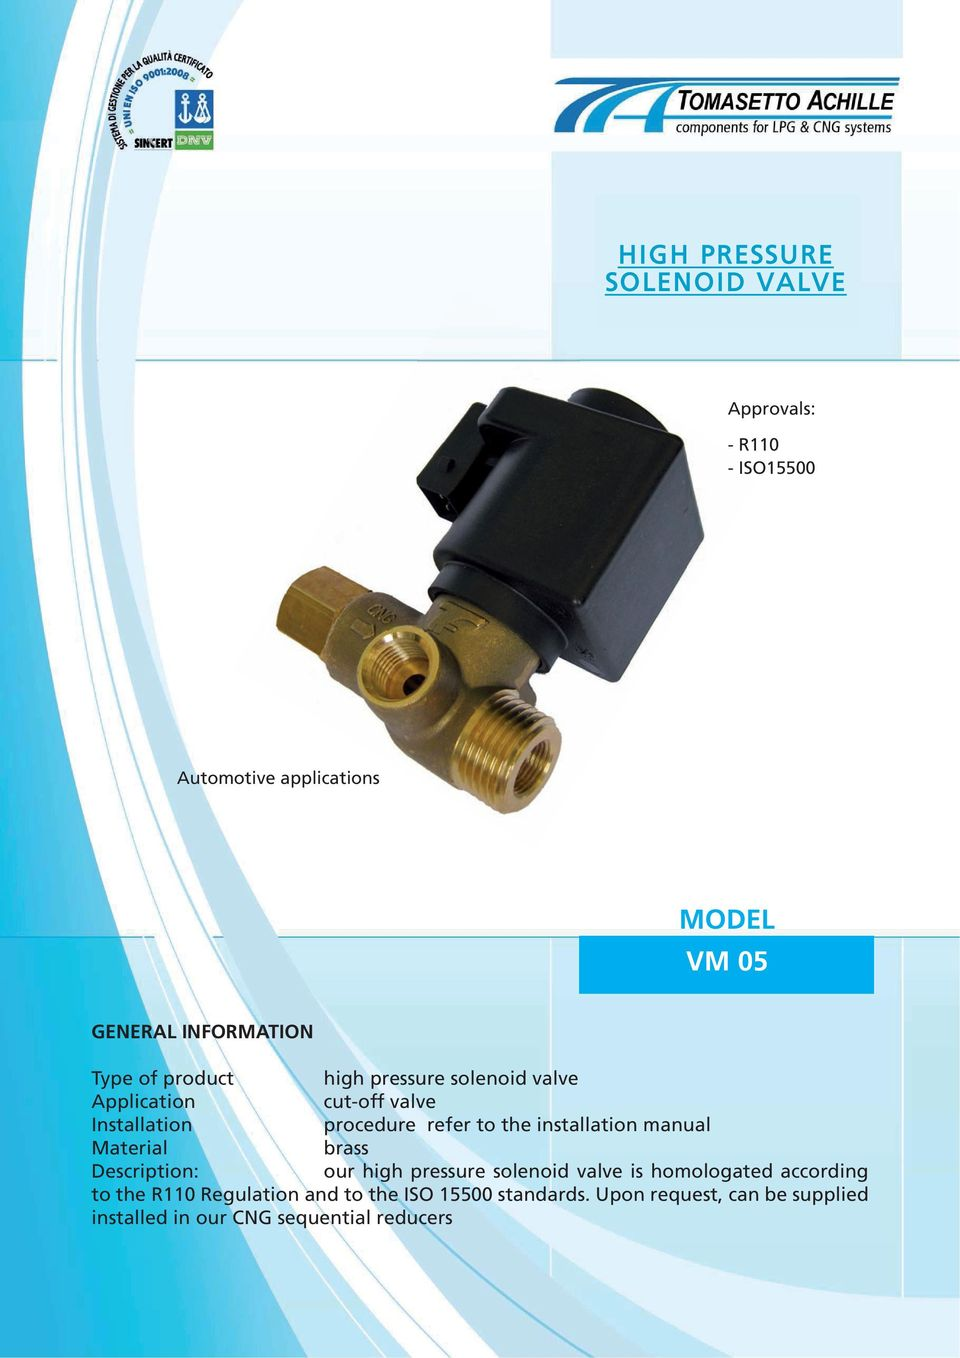 the installation manual Material brass Description: our high pressure solenoid valve is homologated according to